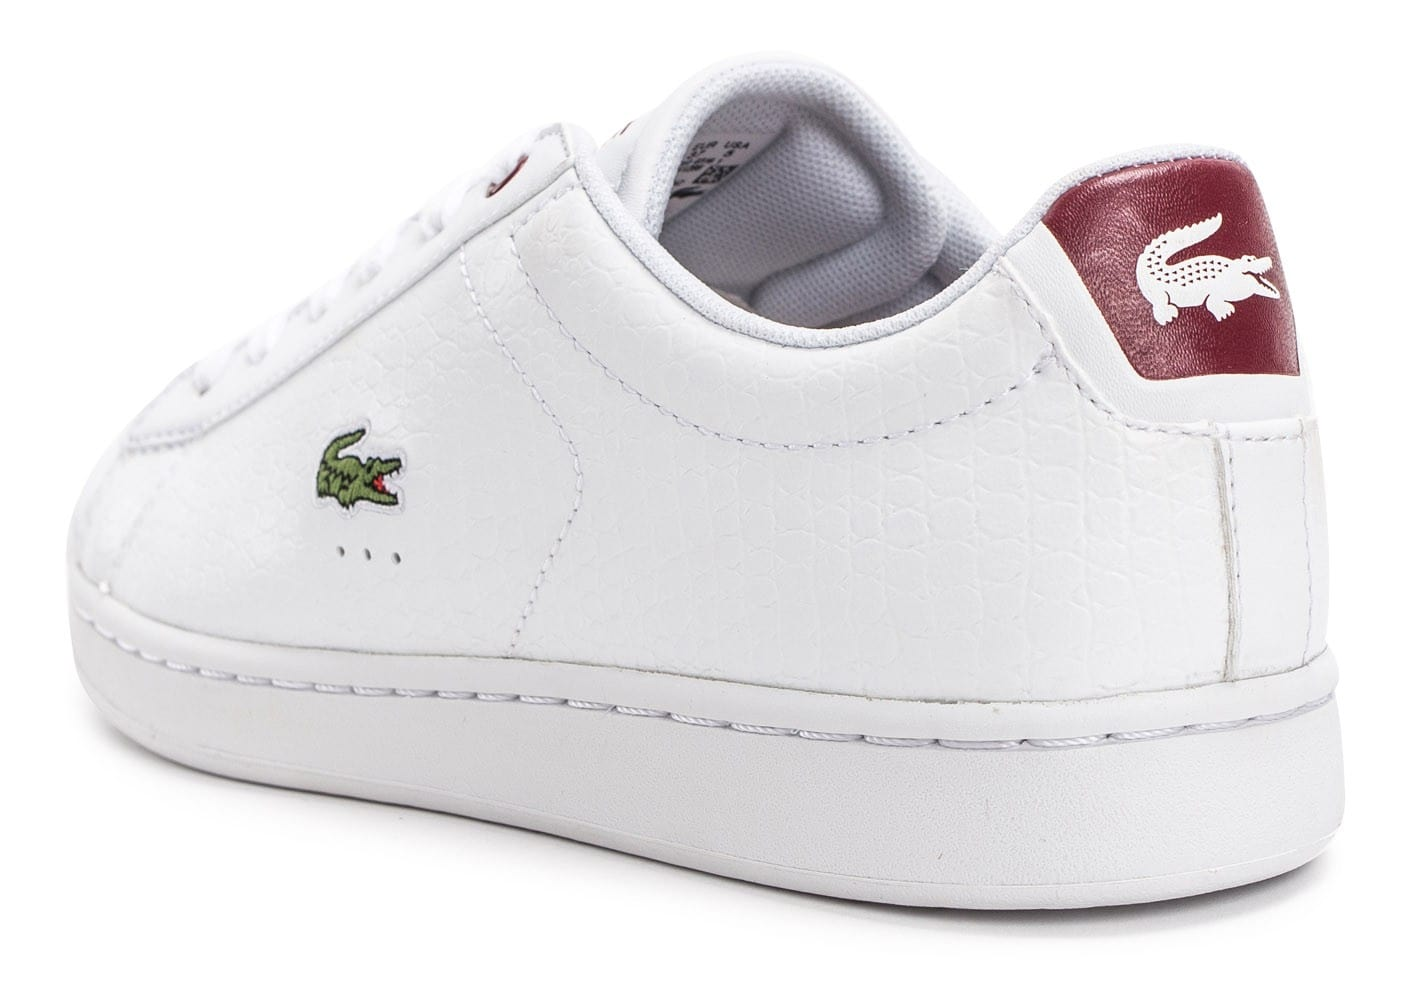 7f0dead06a Baskets Rouge Croc Evo Lacoste Femme Blanche Chaussures Et Carnaby q4x0XA